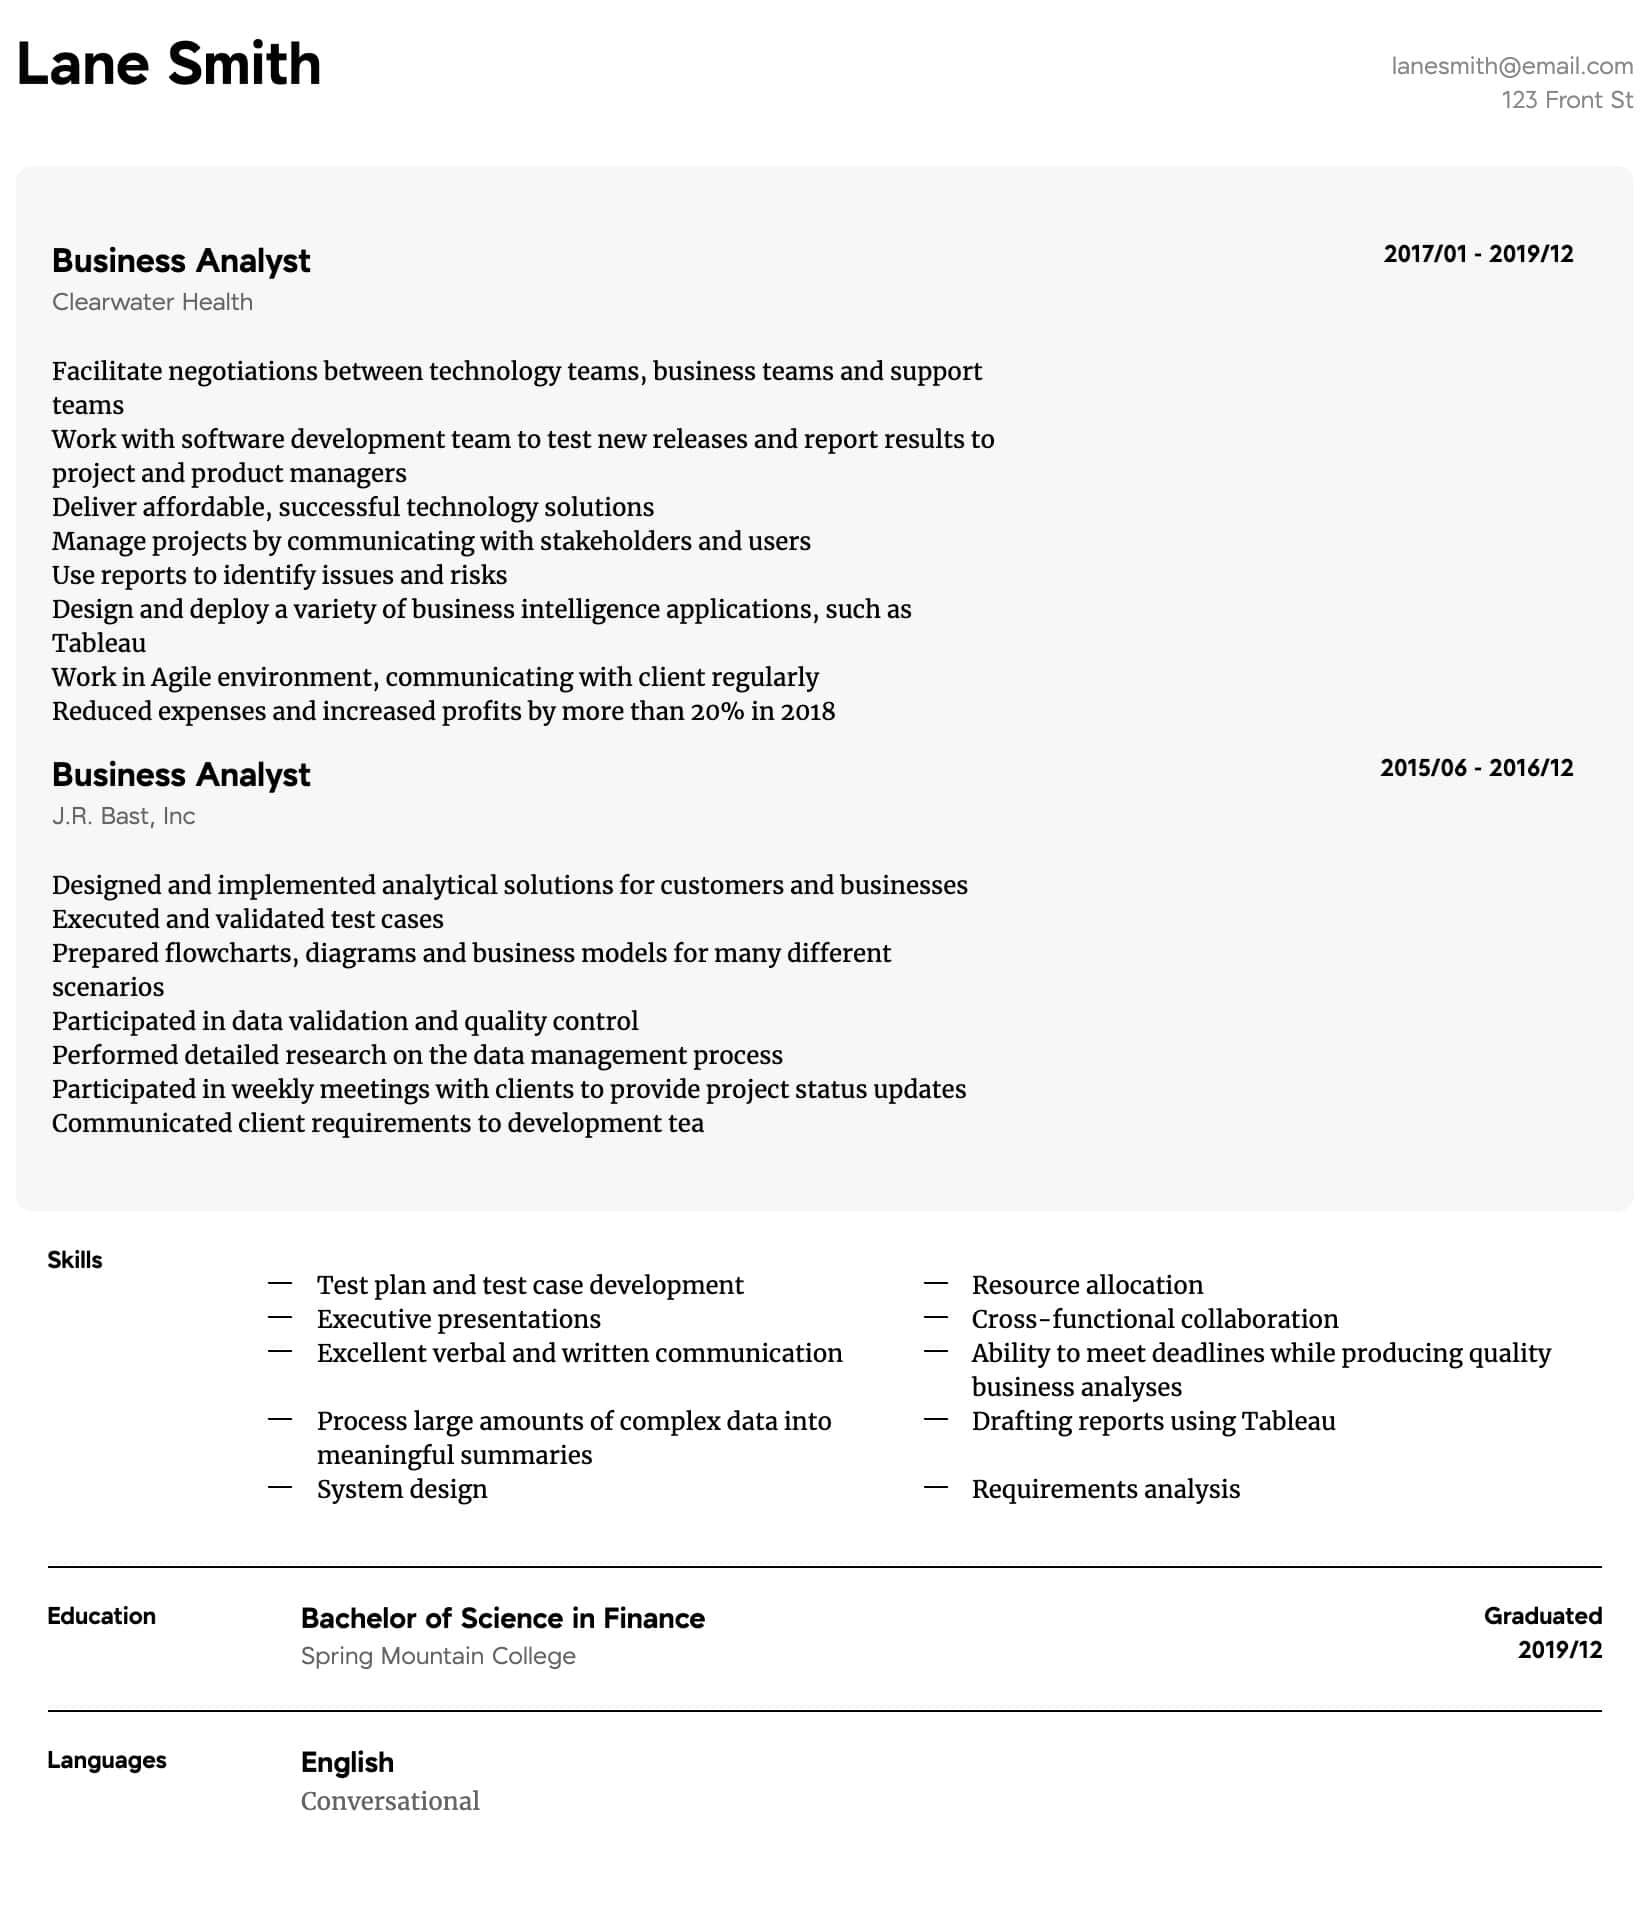 business analyst resume samples all experience levels agile summary intermediate problem Resume Agile Business Analyst Resume Summary